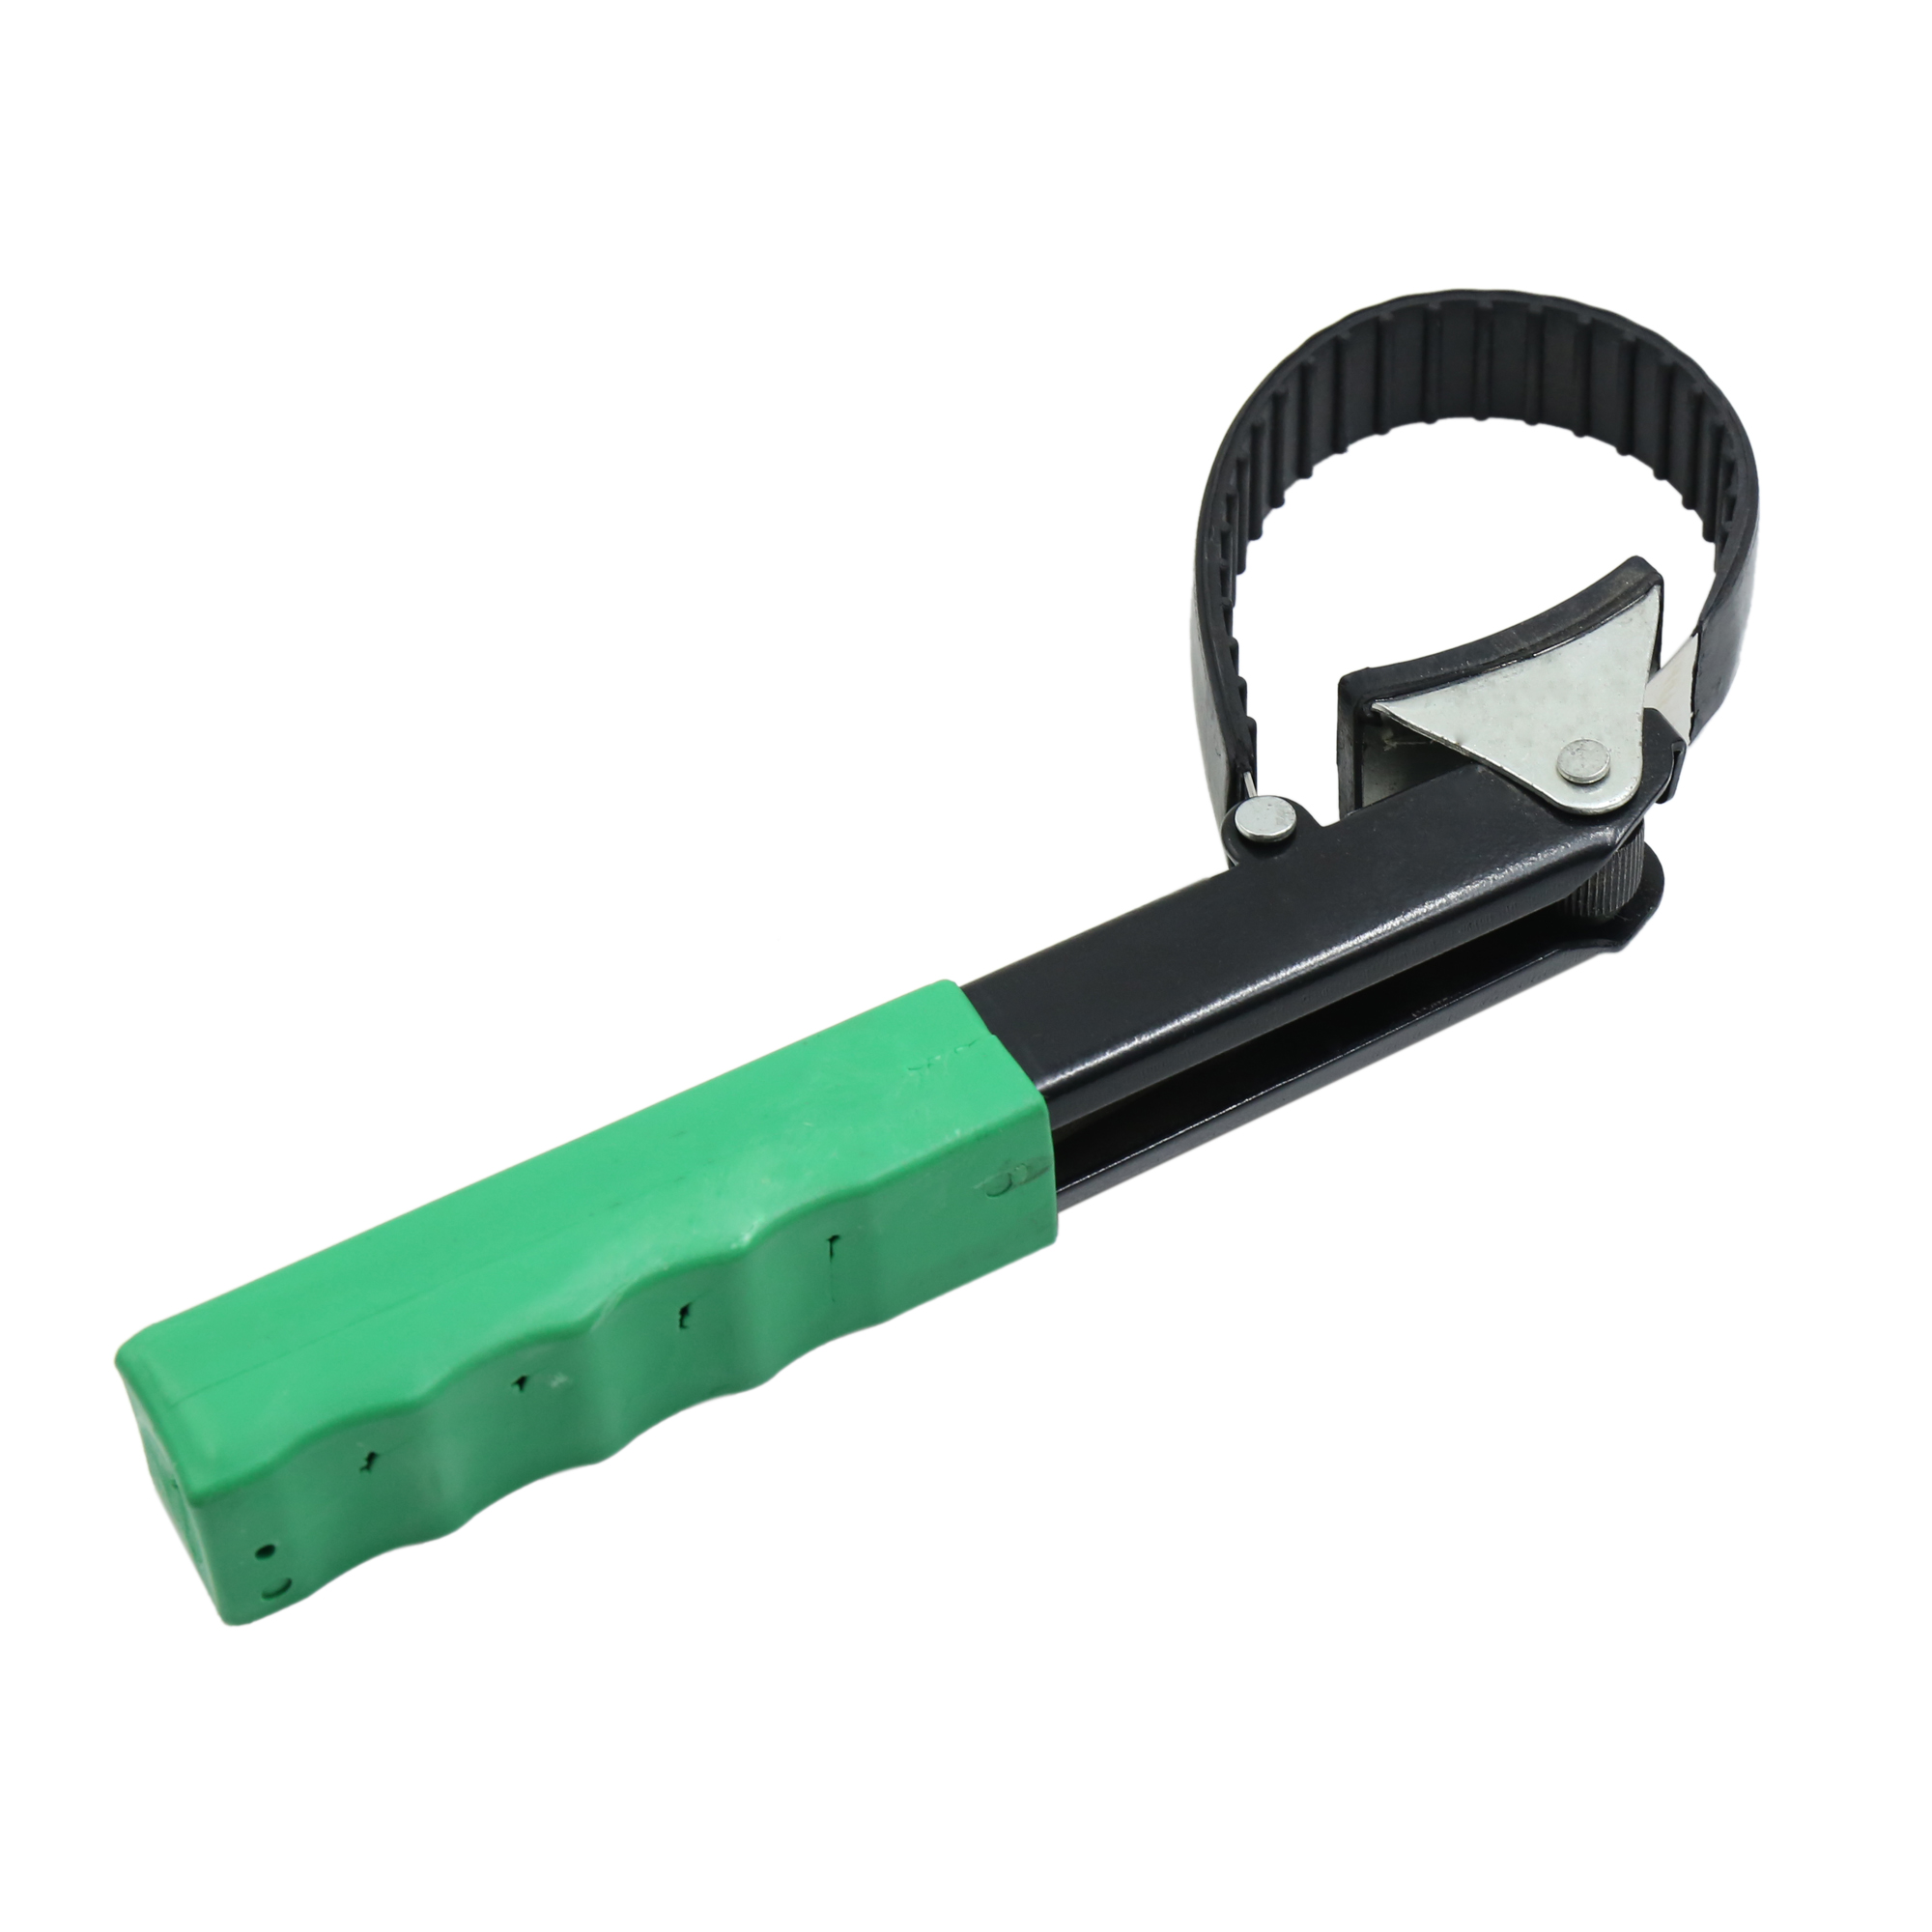 Green Handle Oil Filter Strap Wrench Adjustable Spanner Repair Tool for Car